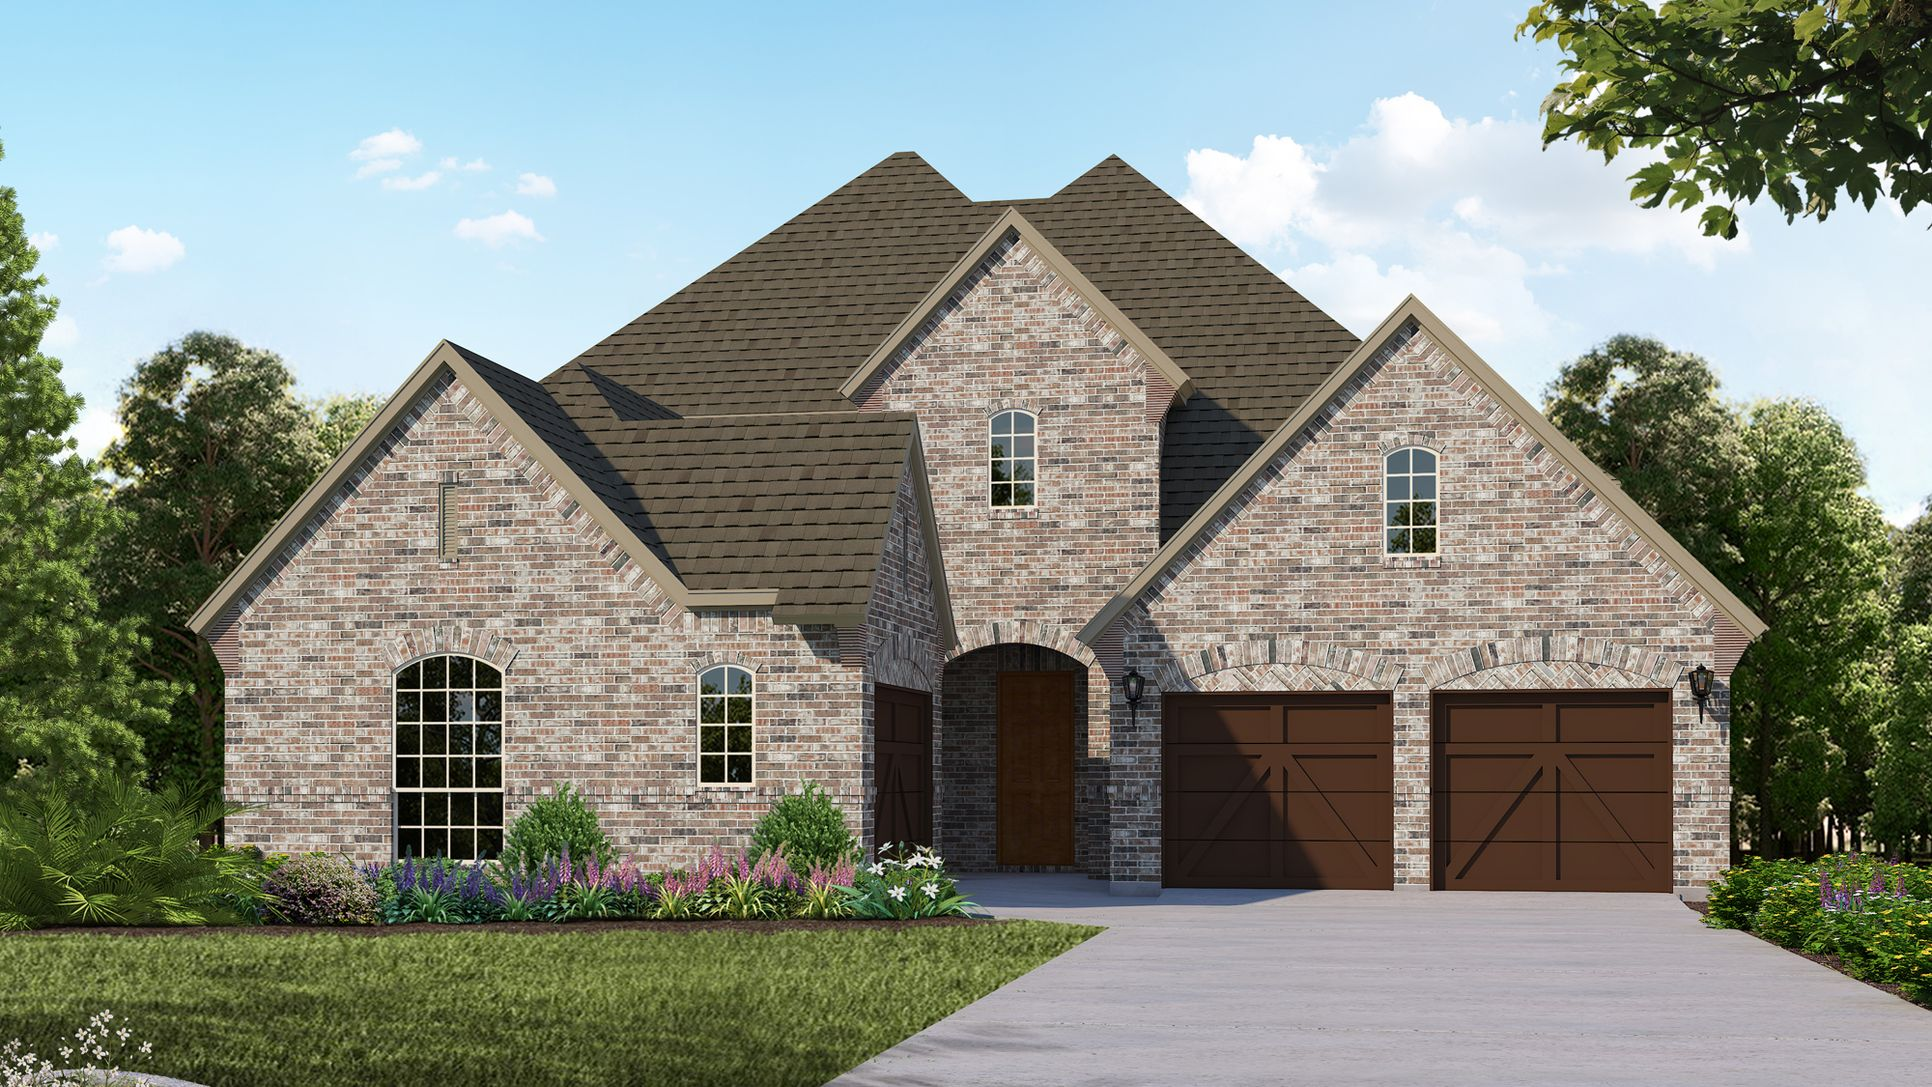 Exterior:Plan 610 Elevation A